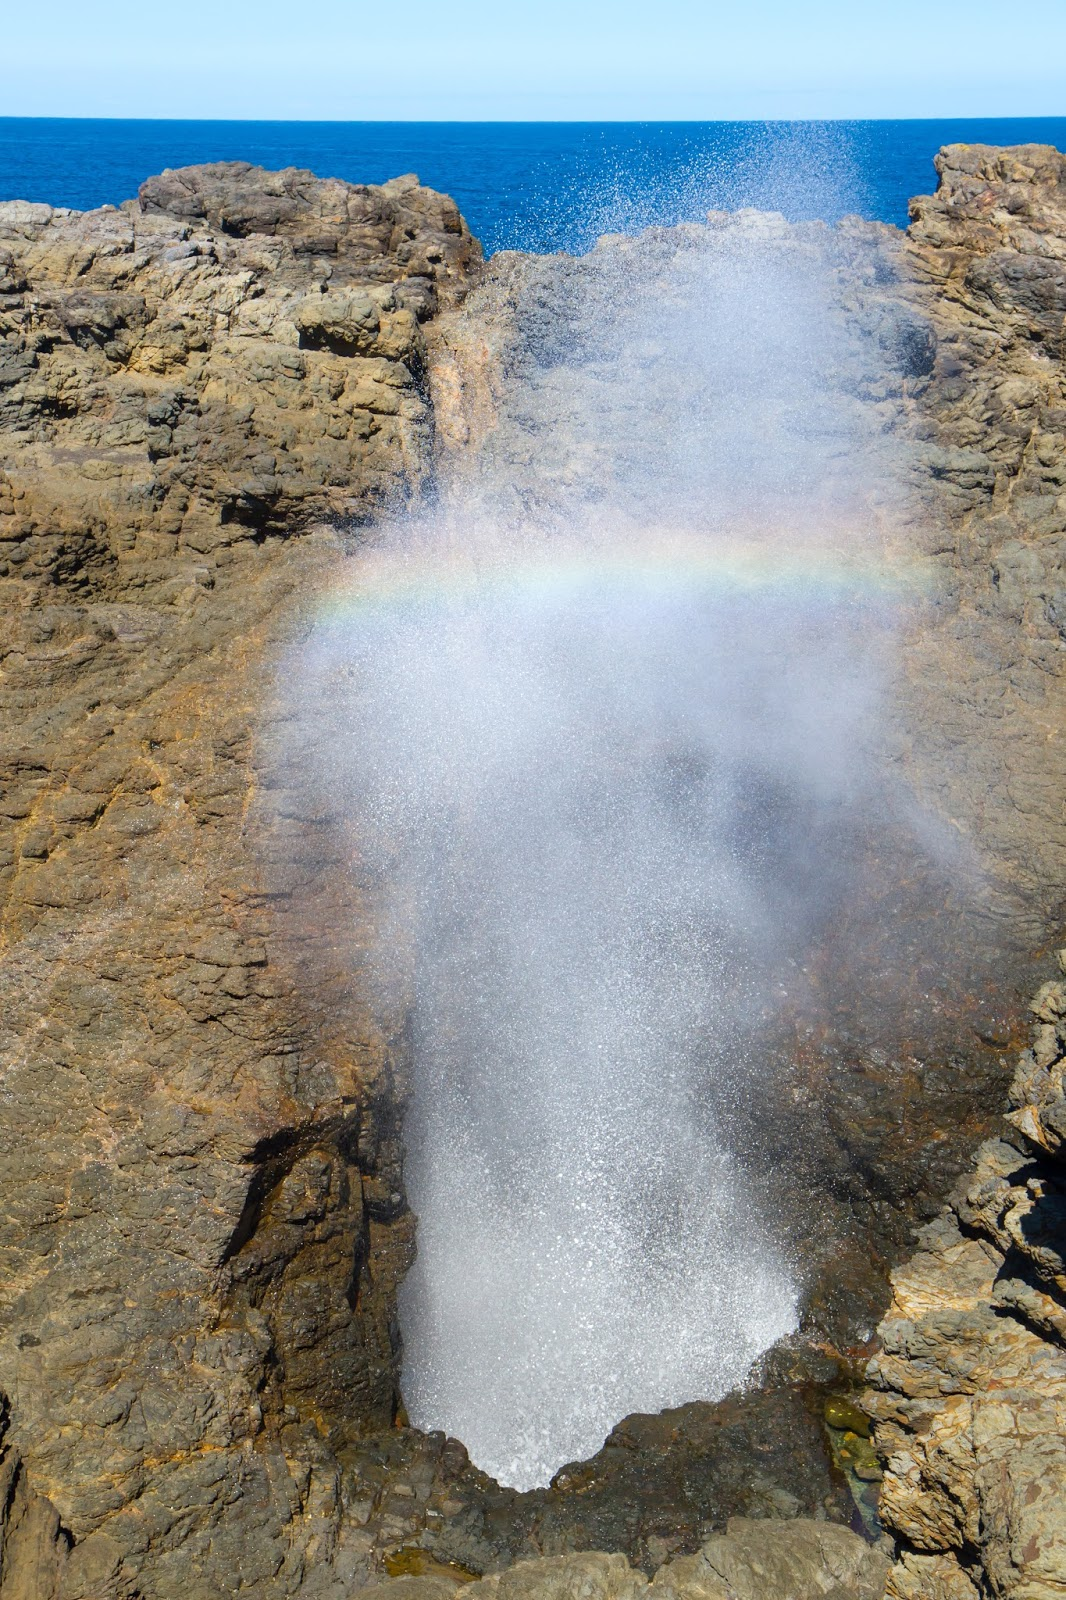 Kiama Blow Hole with a rainbow created from the spray